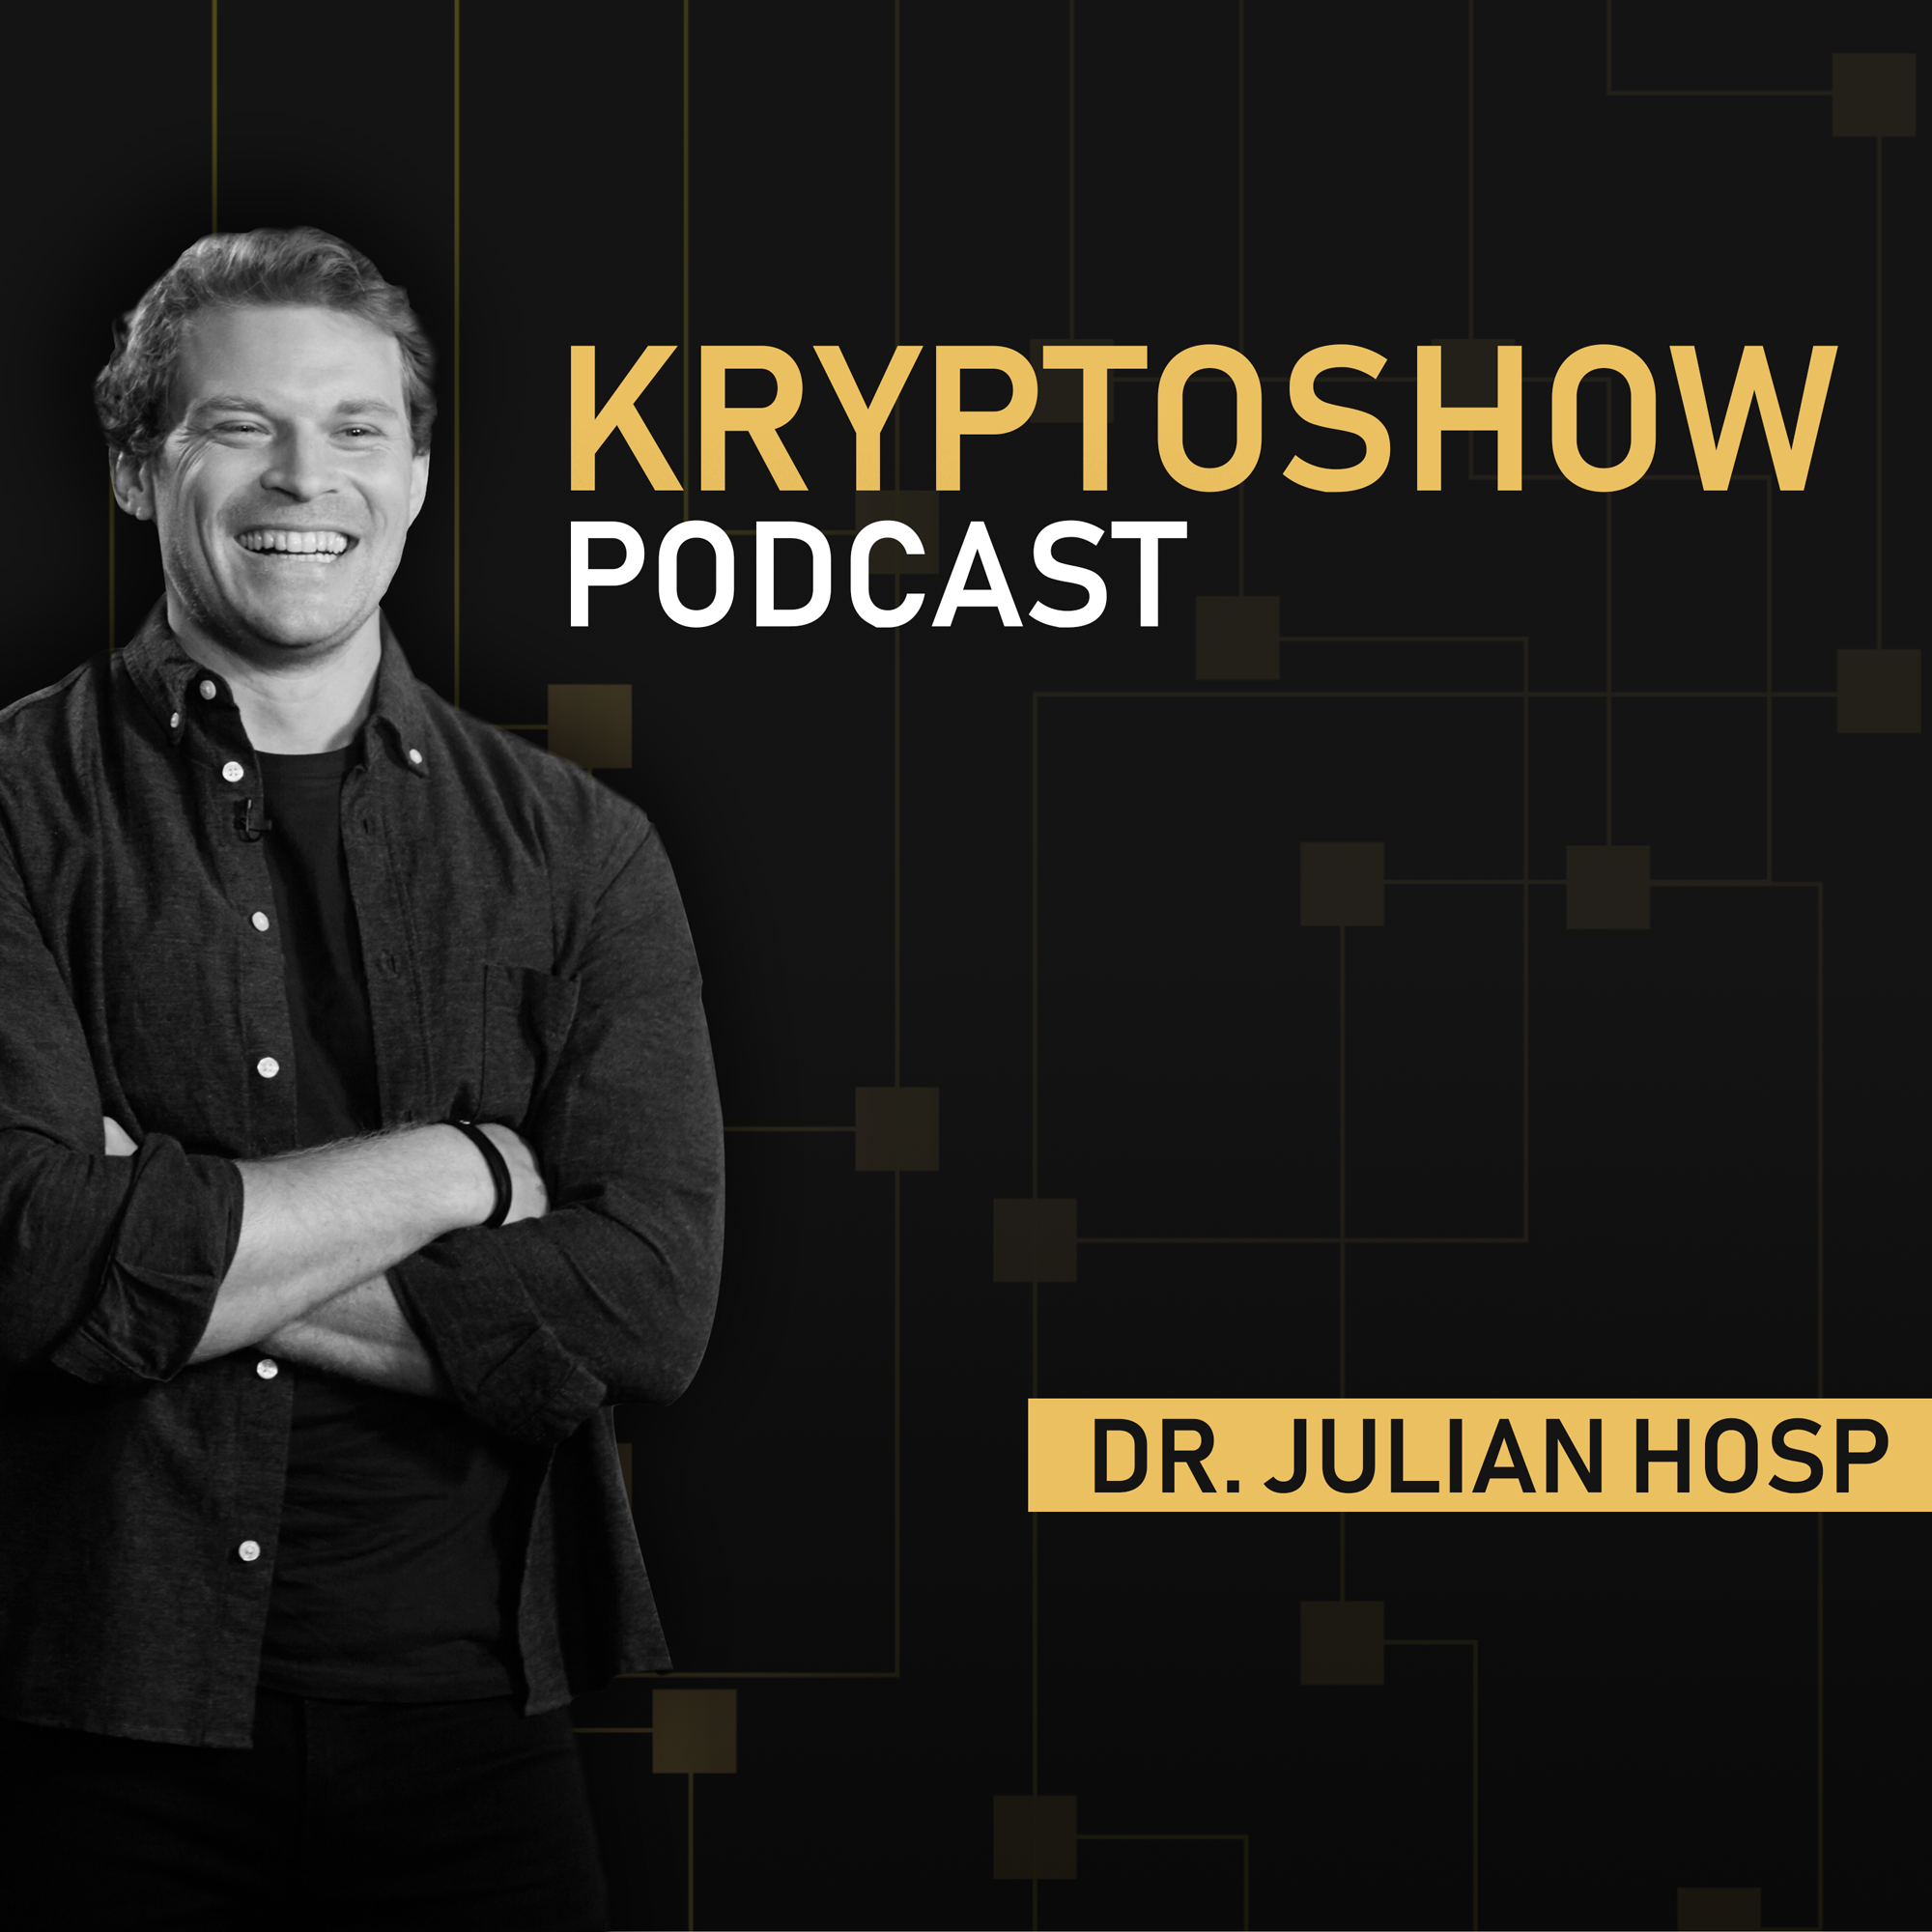 Artwork for #30 Kryptoshow: Private Keys, Unconfirmed Transactions, WannaCry Malware, China, SEC Entscheidung,...